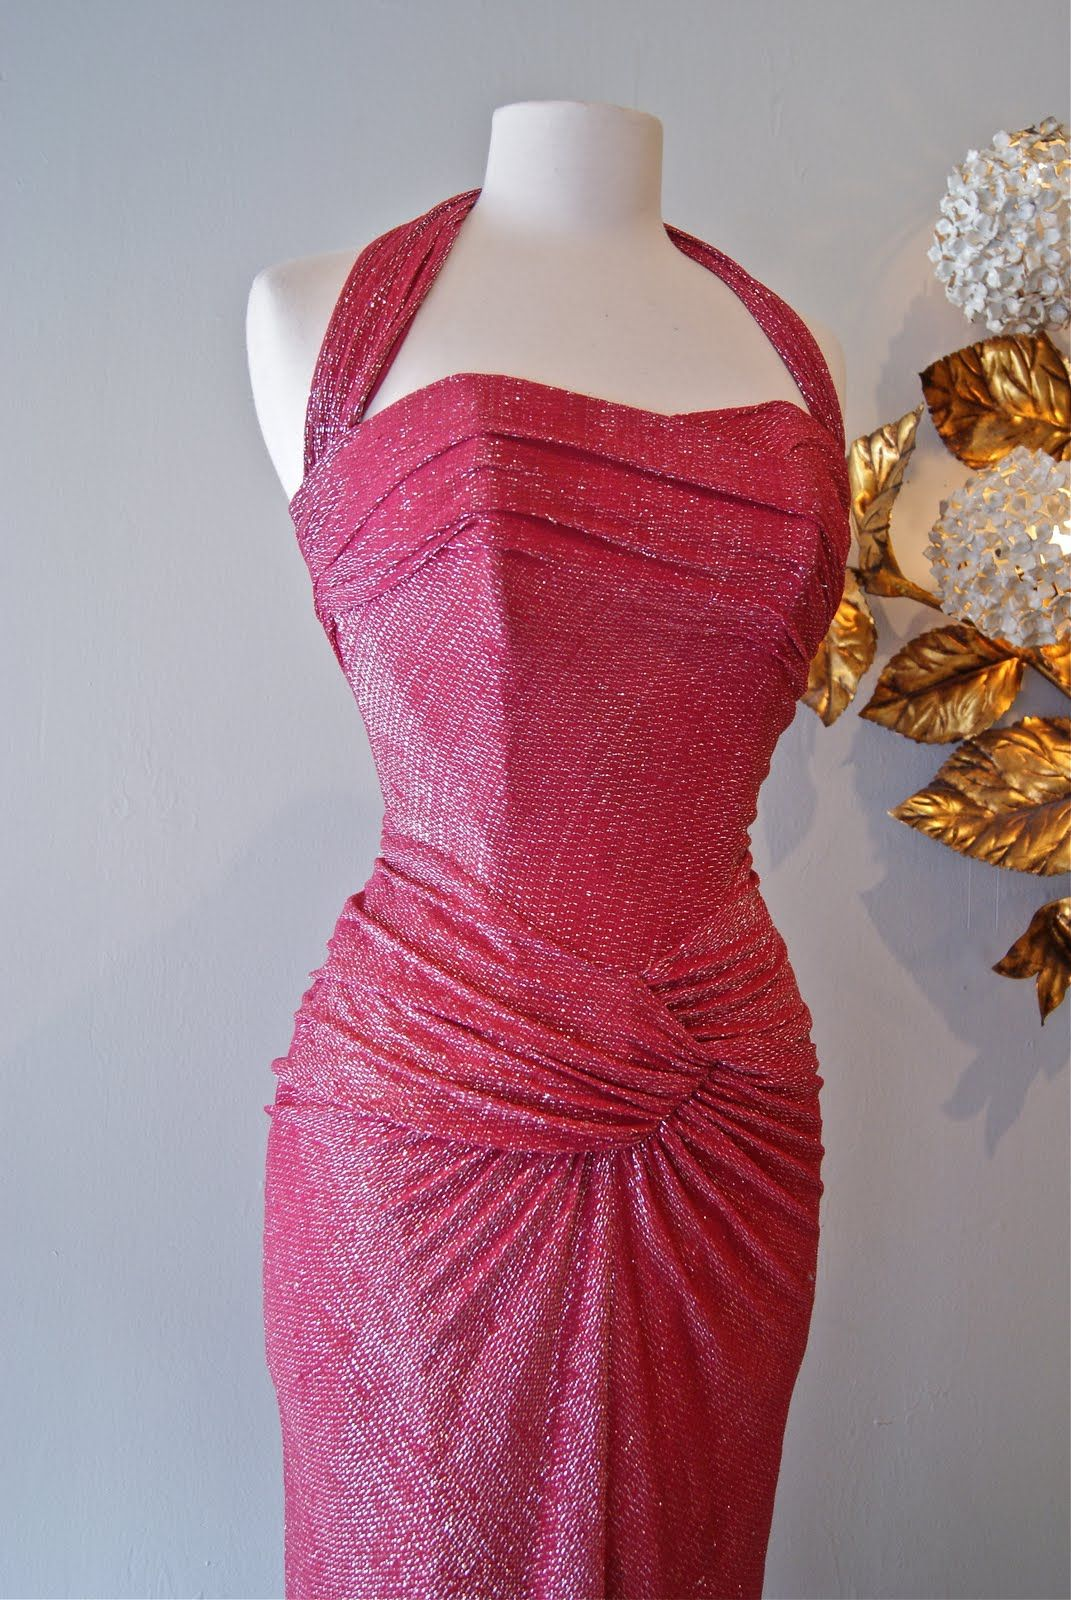 Xtabay Vintage Clothing Boutique - Portland, Oregon: Sexiest Dress ...